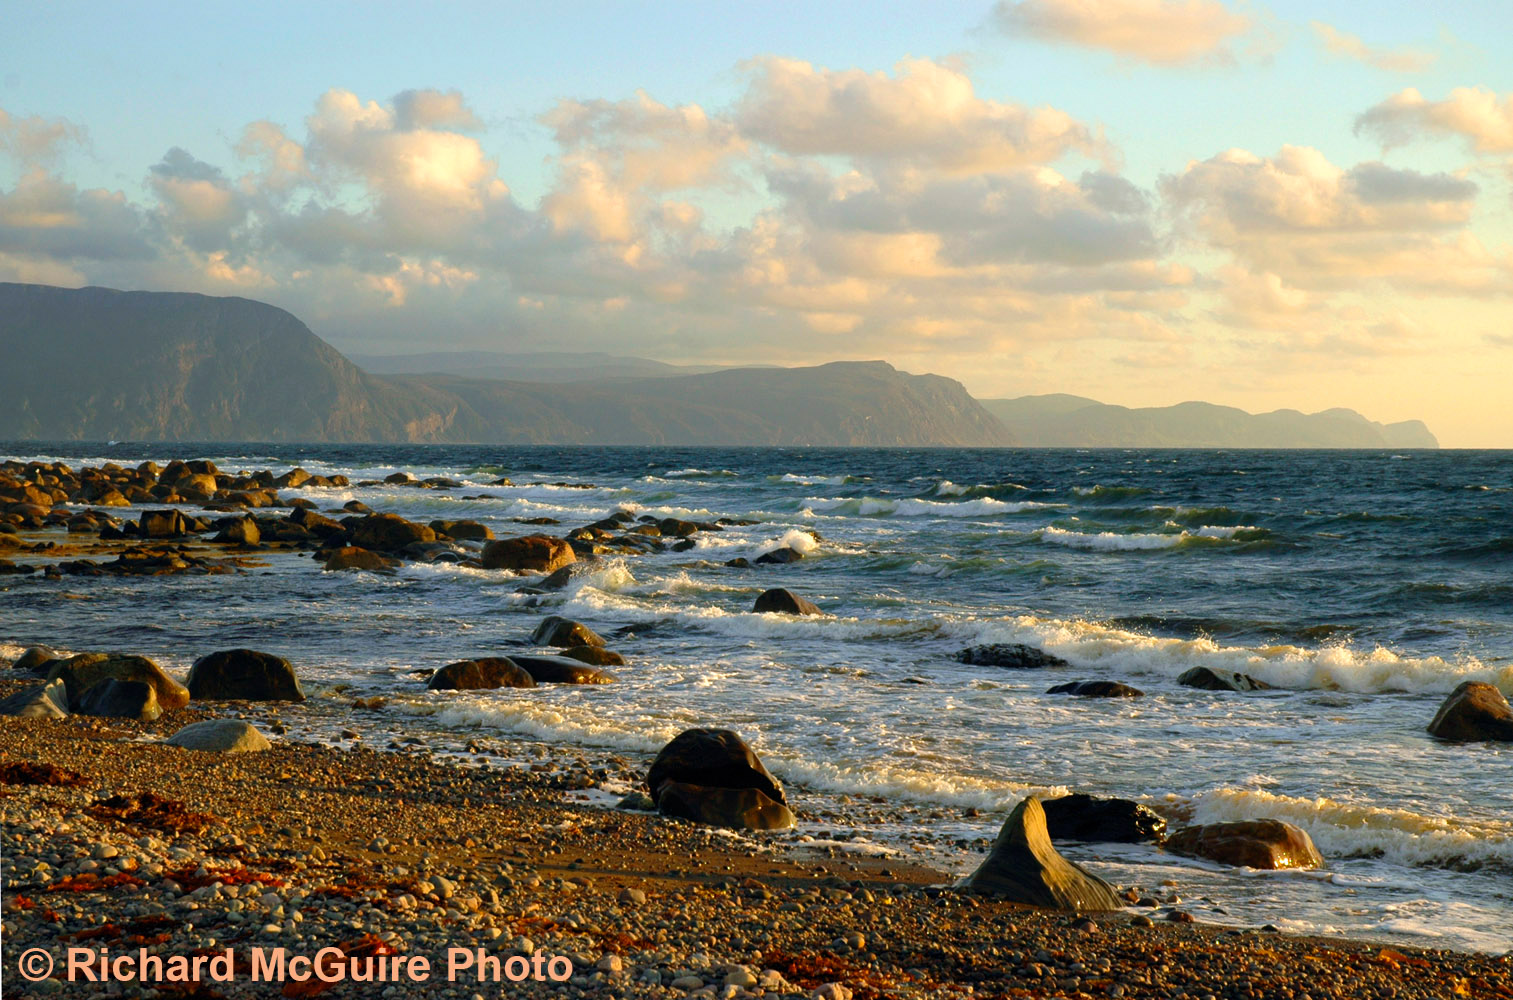 Near Lobster Cove, Gros Morne National Park, Newfoundland and Labrador, Canada